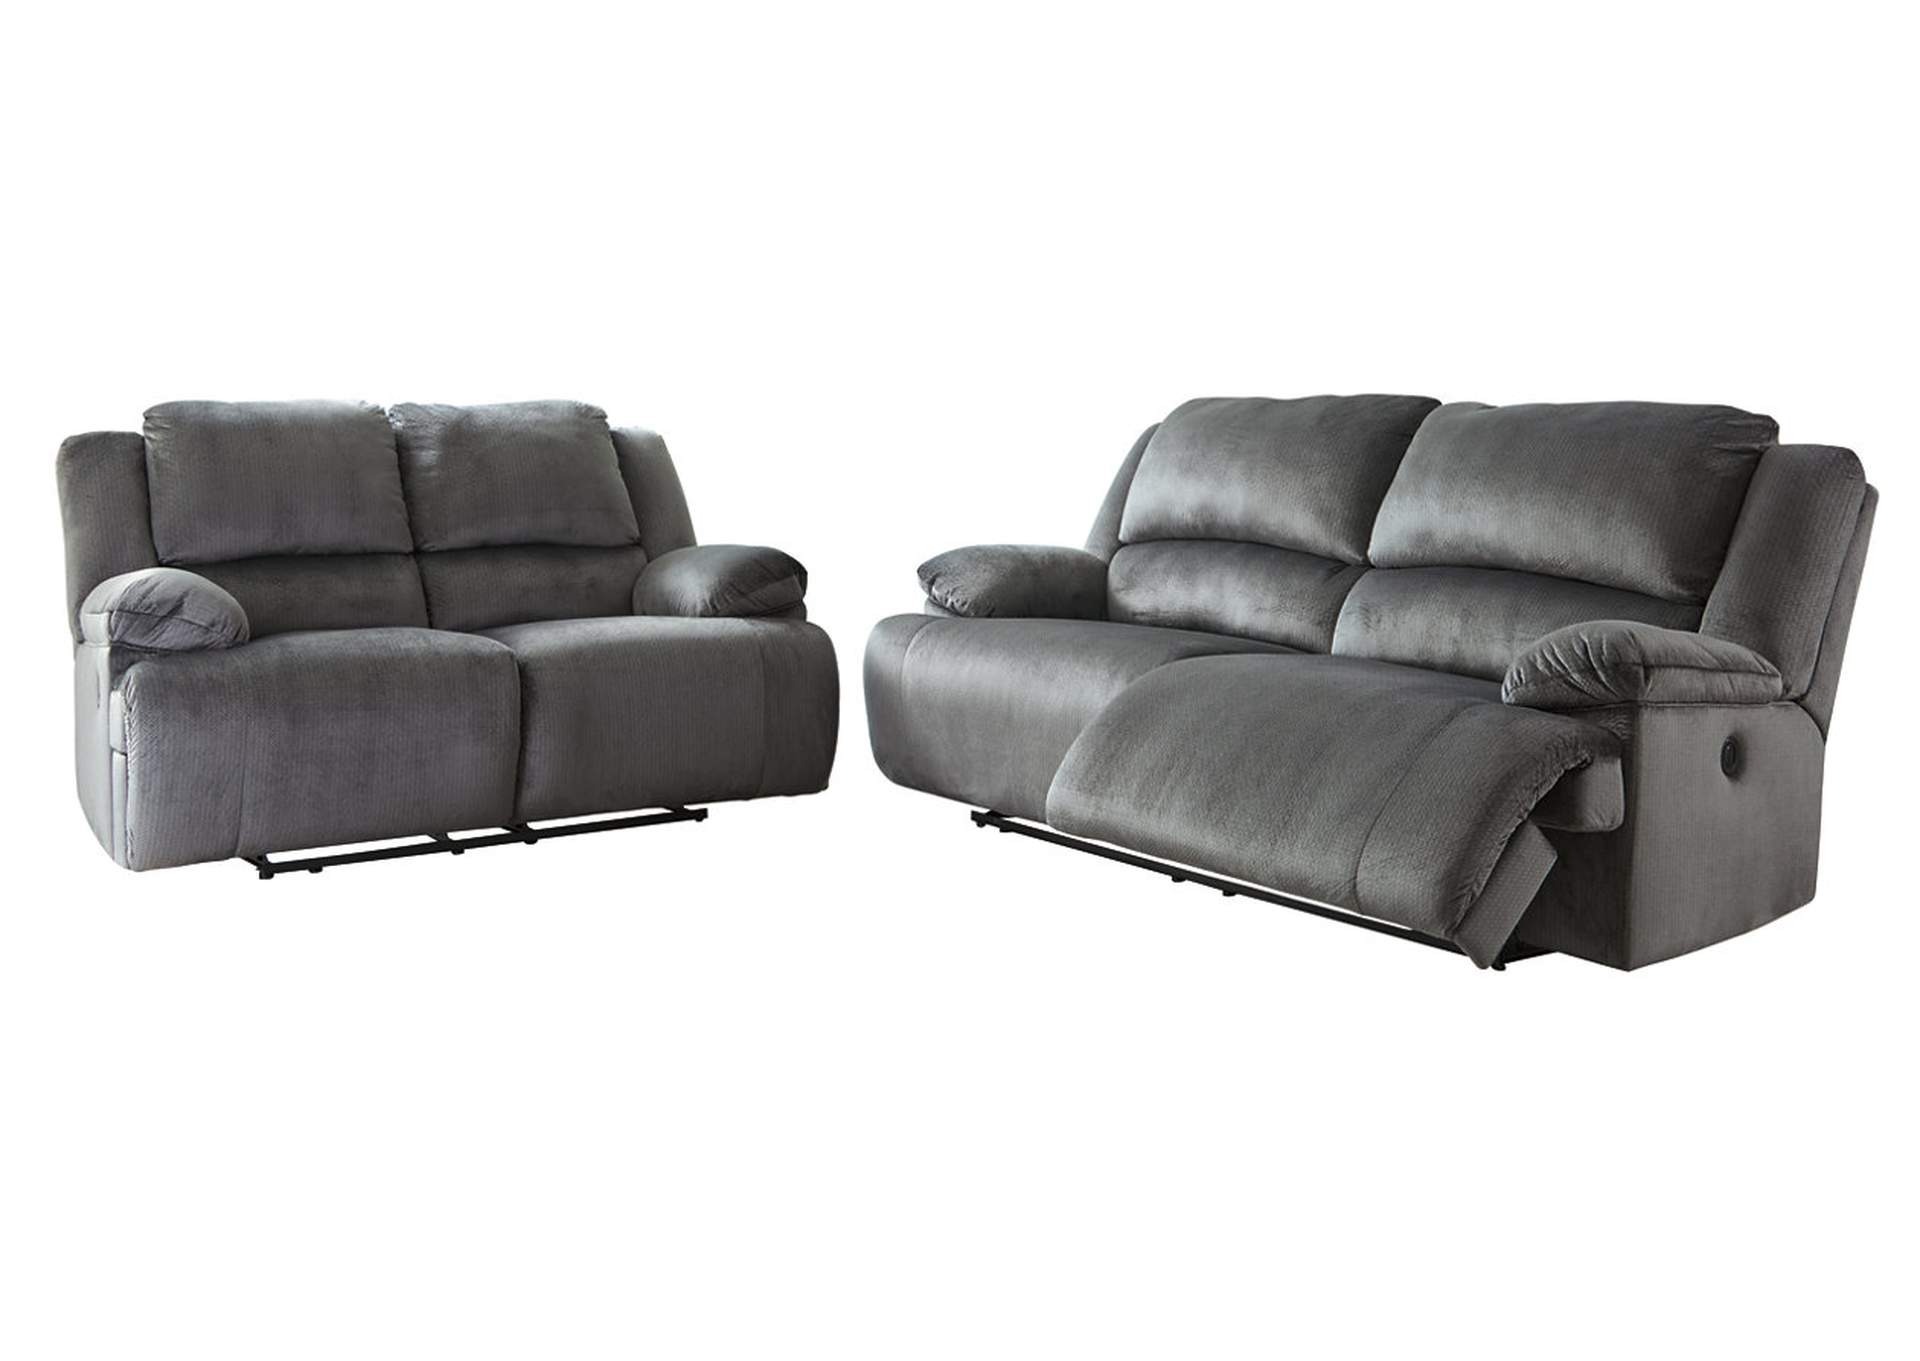 Clonmel Power Reclining Sofa and Loveseat,Signature Design By Ashley